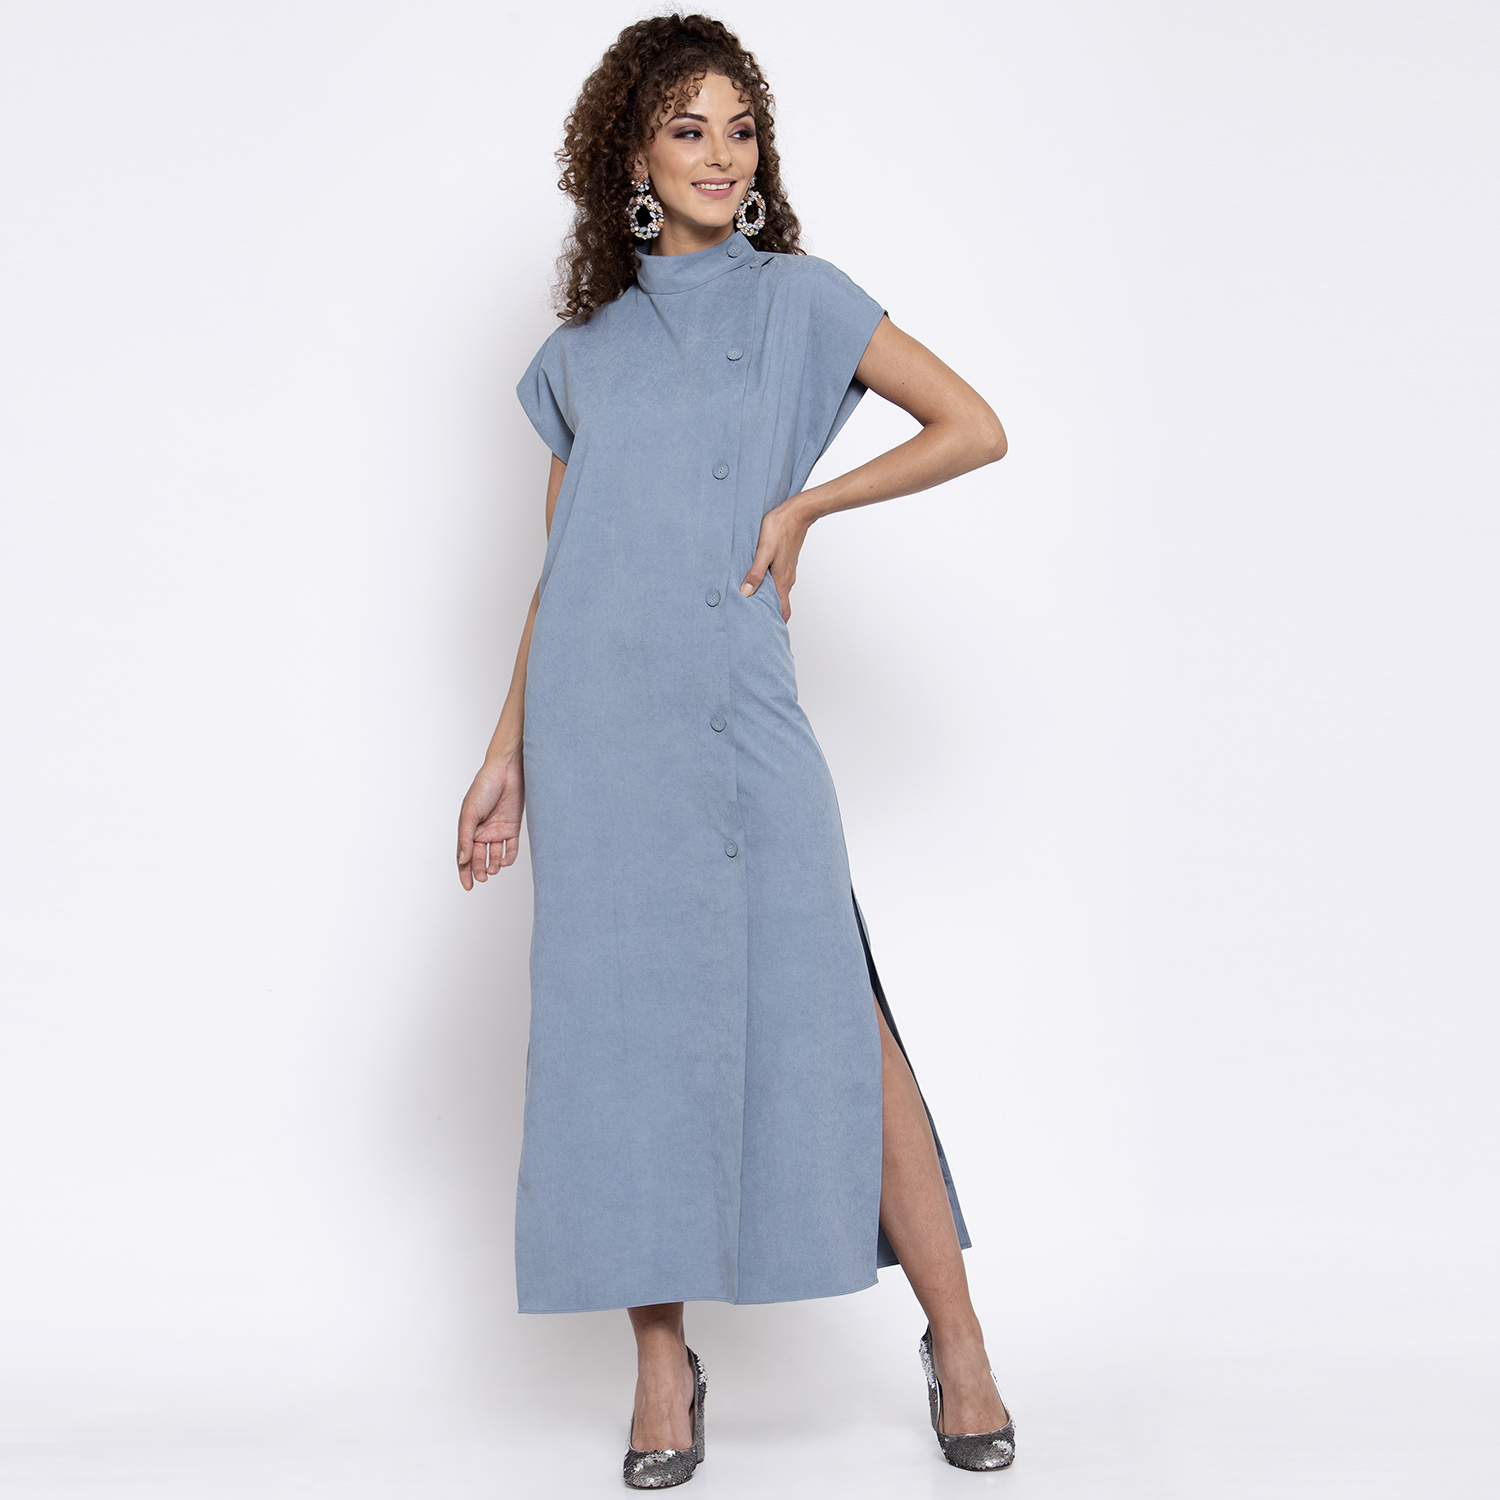 Blue long dress with buttons